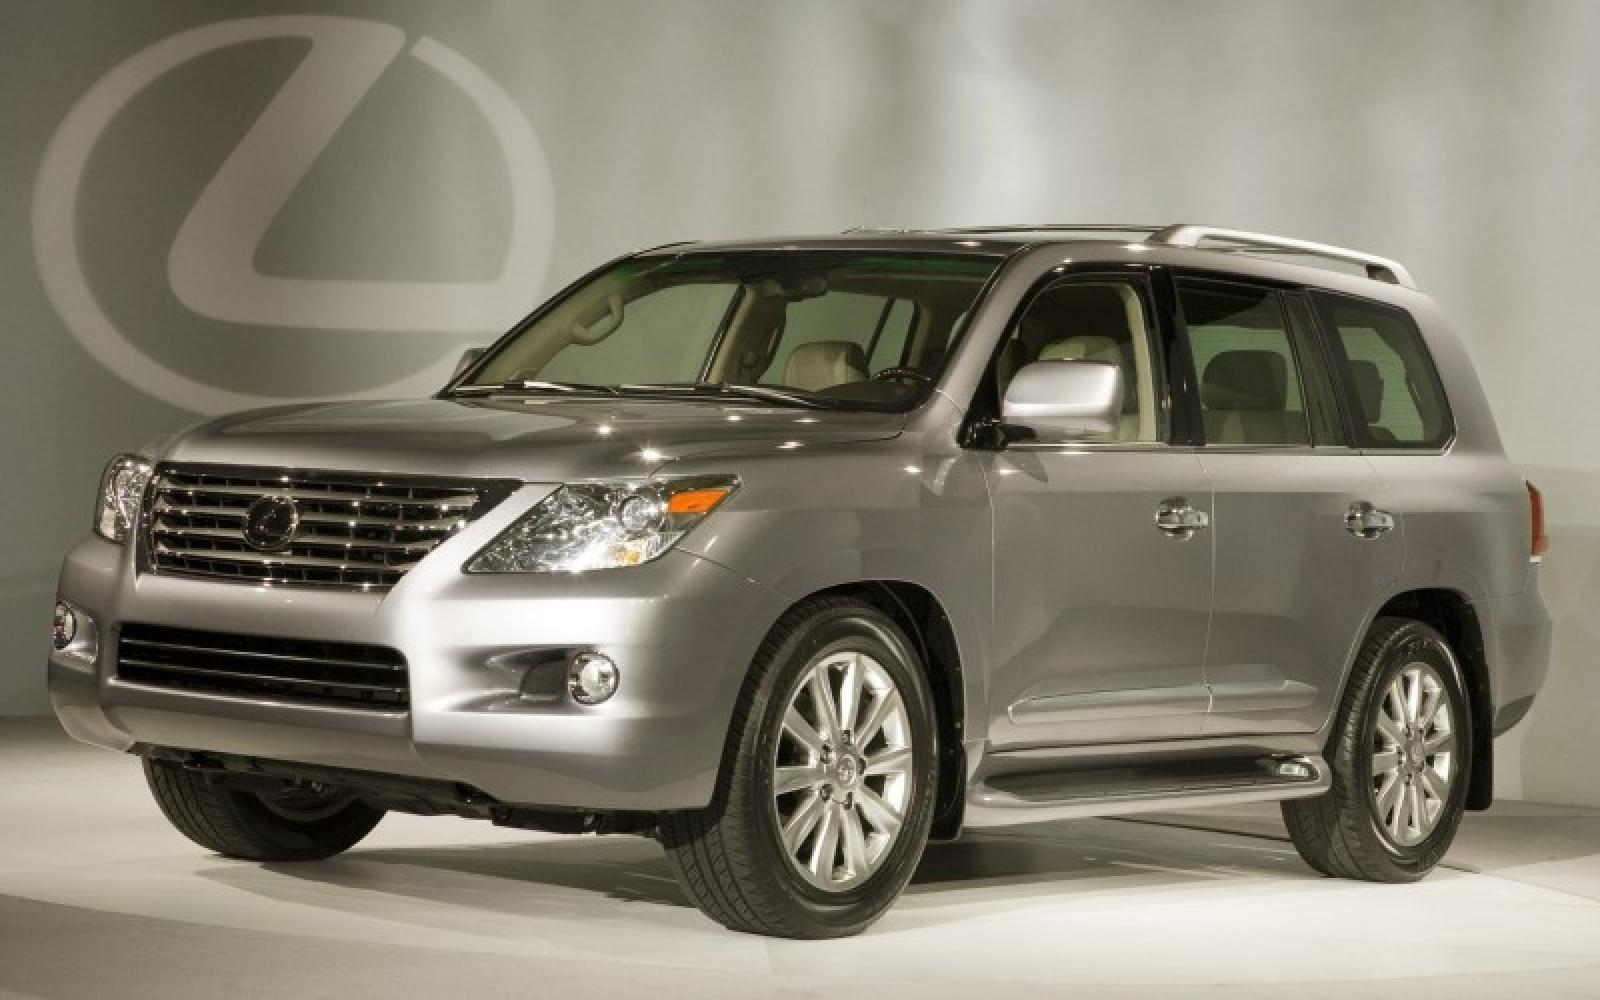 2008 Lexus Lx 570 Information And Photos Zombiedrive